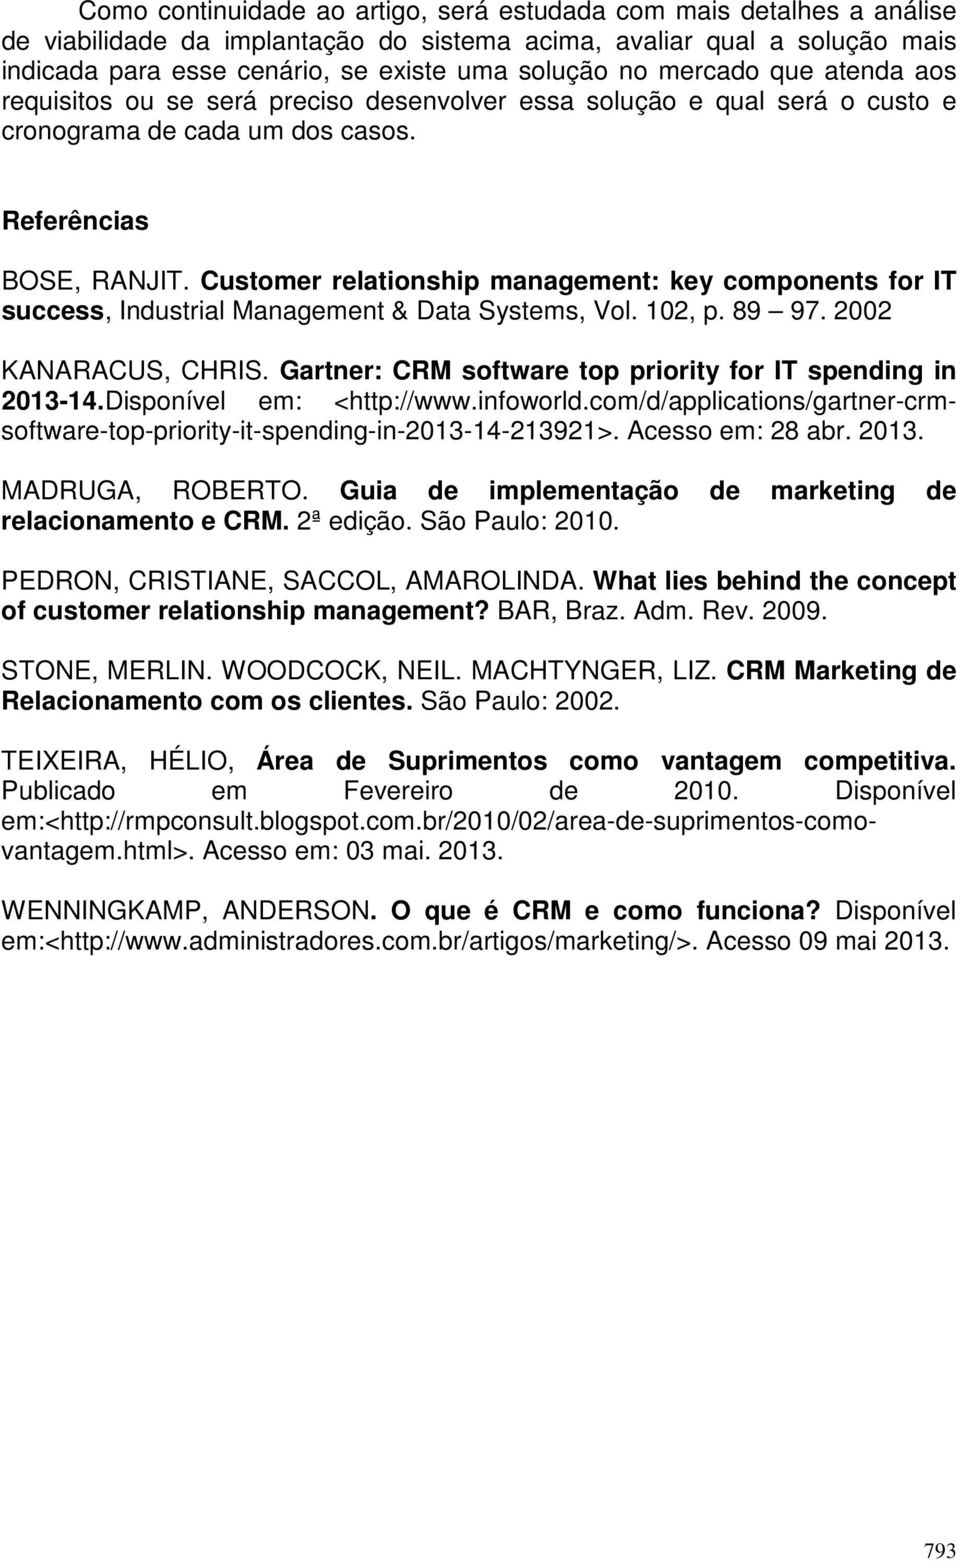 Customer relationship management: key components for IT success, Industrial Management & Data Systems, Vol. 102, p. 89 97. 2002 KANARACUS, CHRIS.